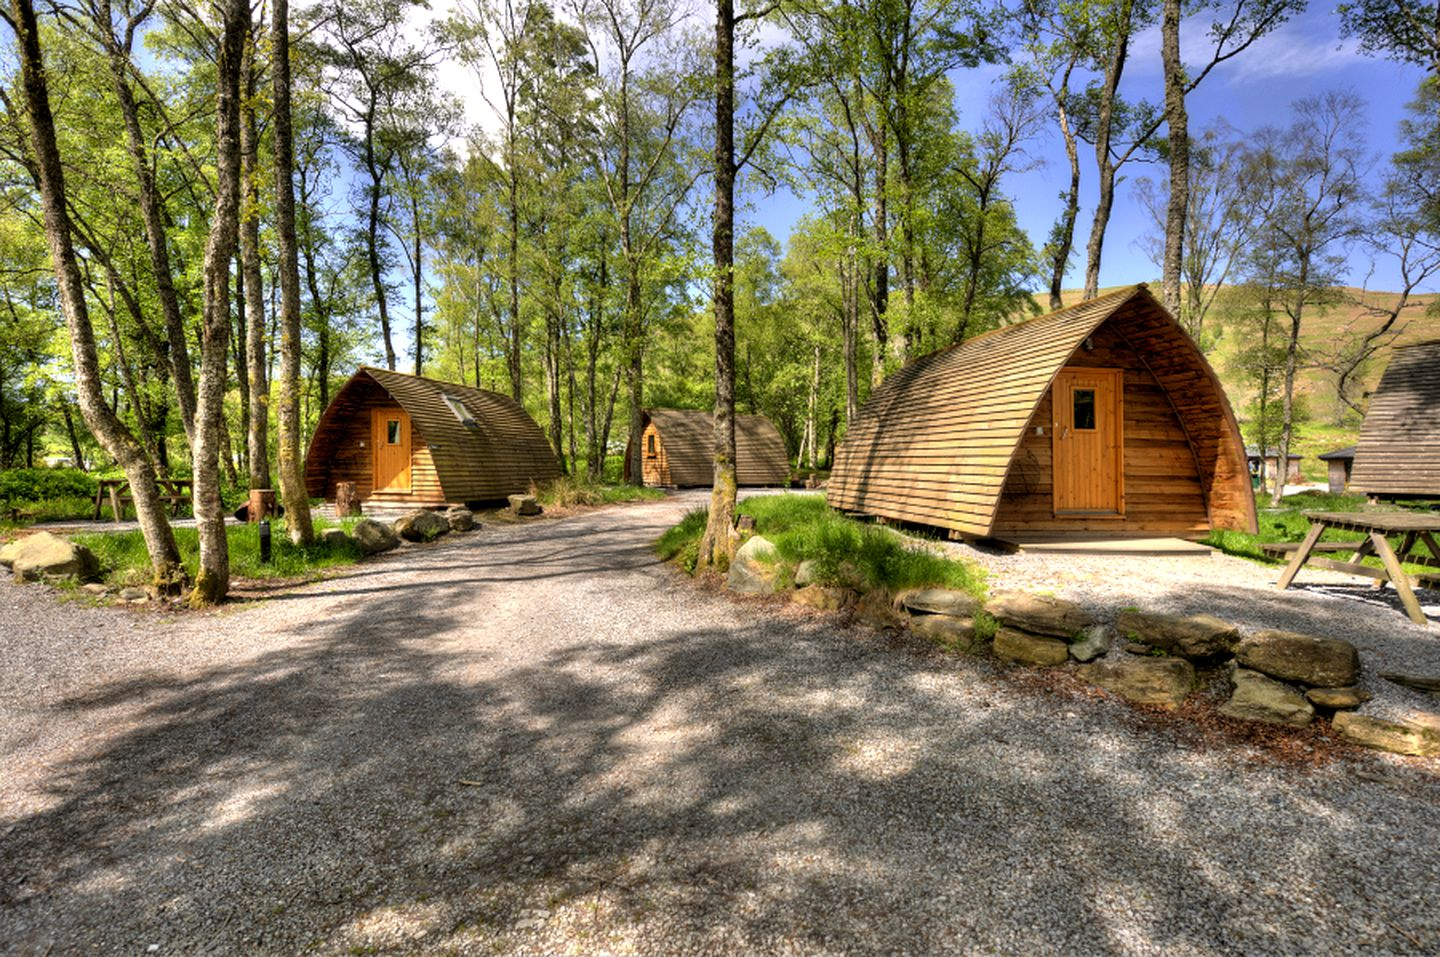 Wigwam holiday rentals for glamping in Scotland.